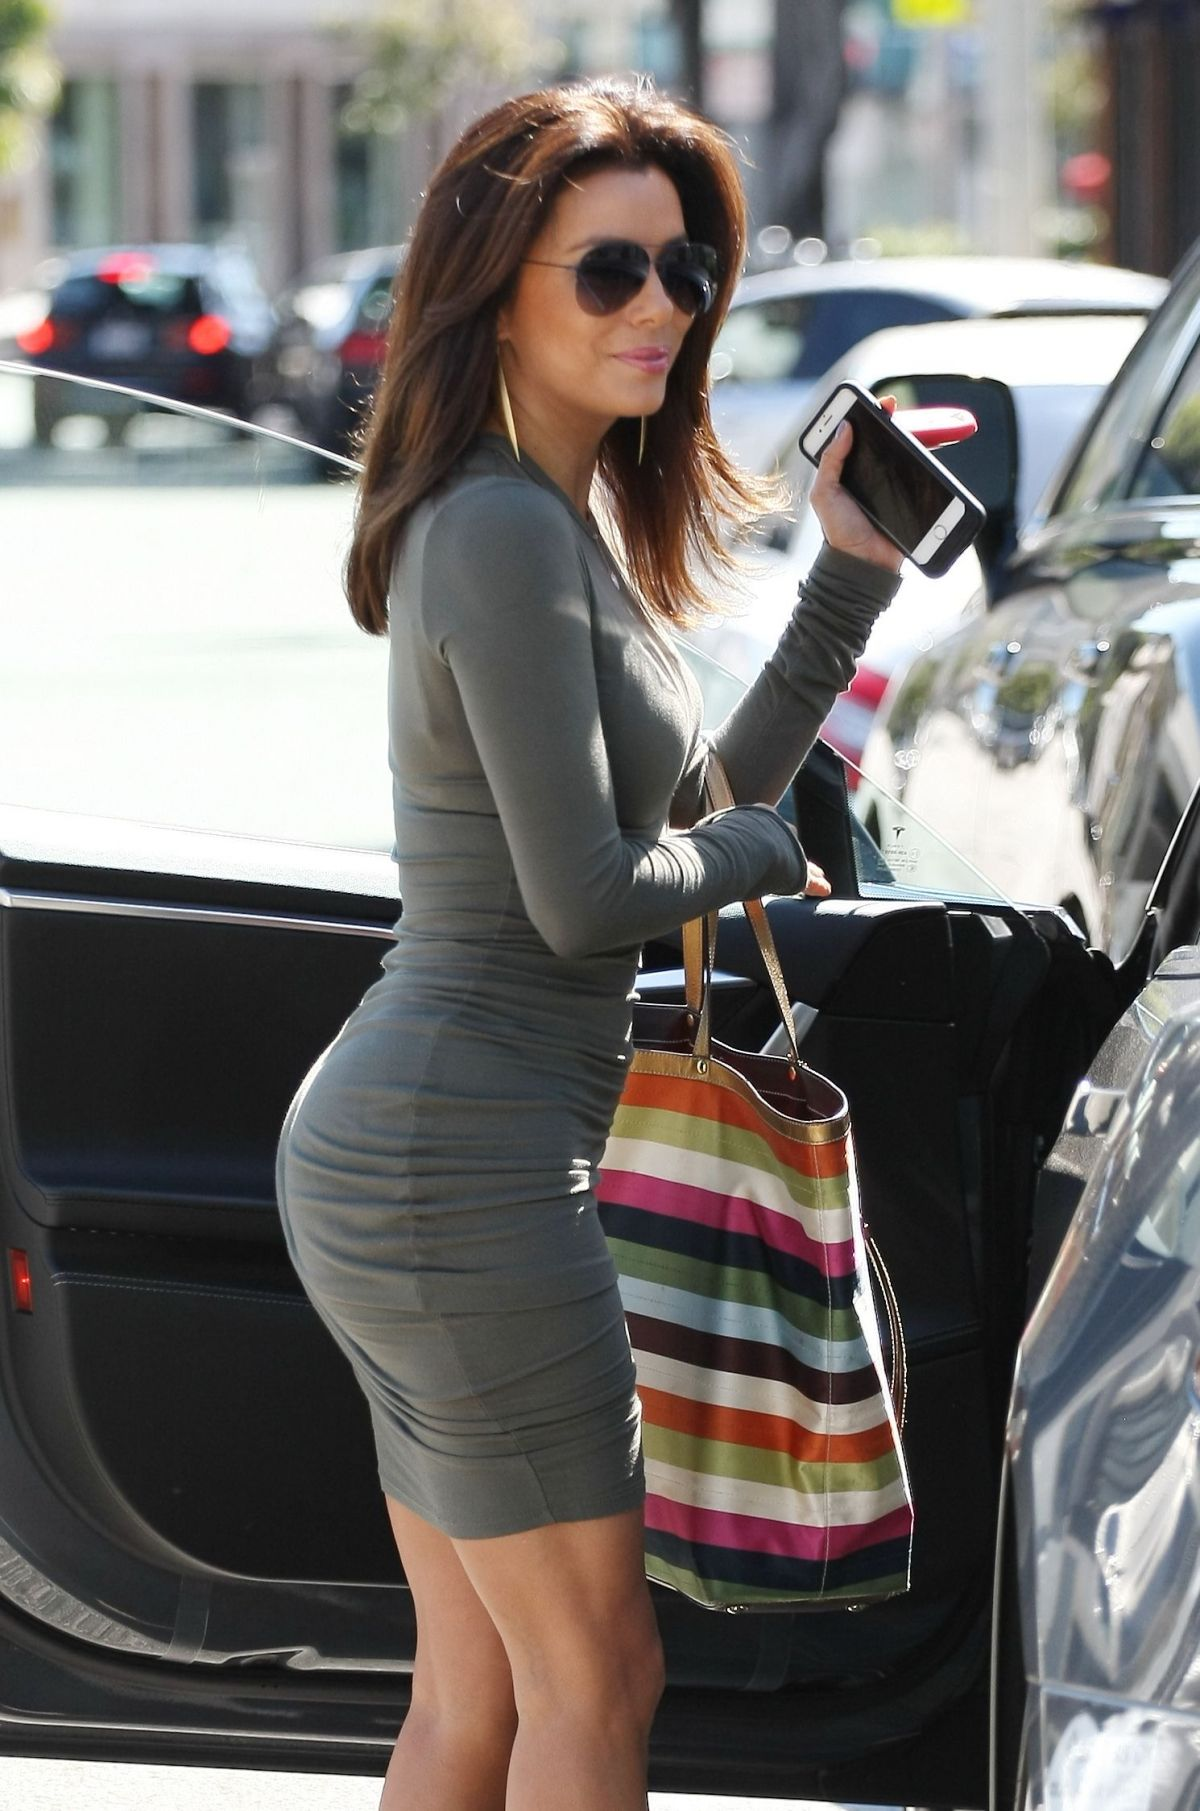 longoria tight dress Eva